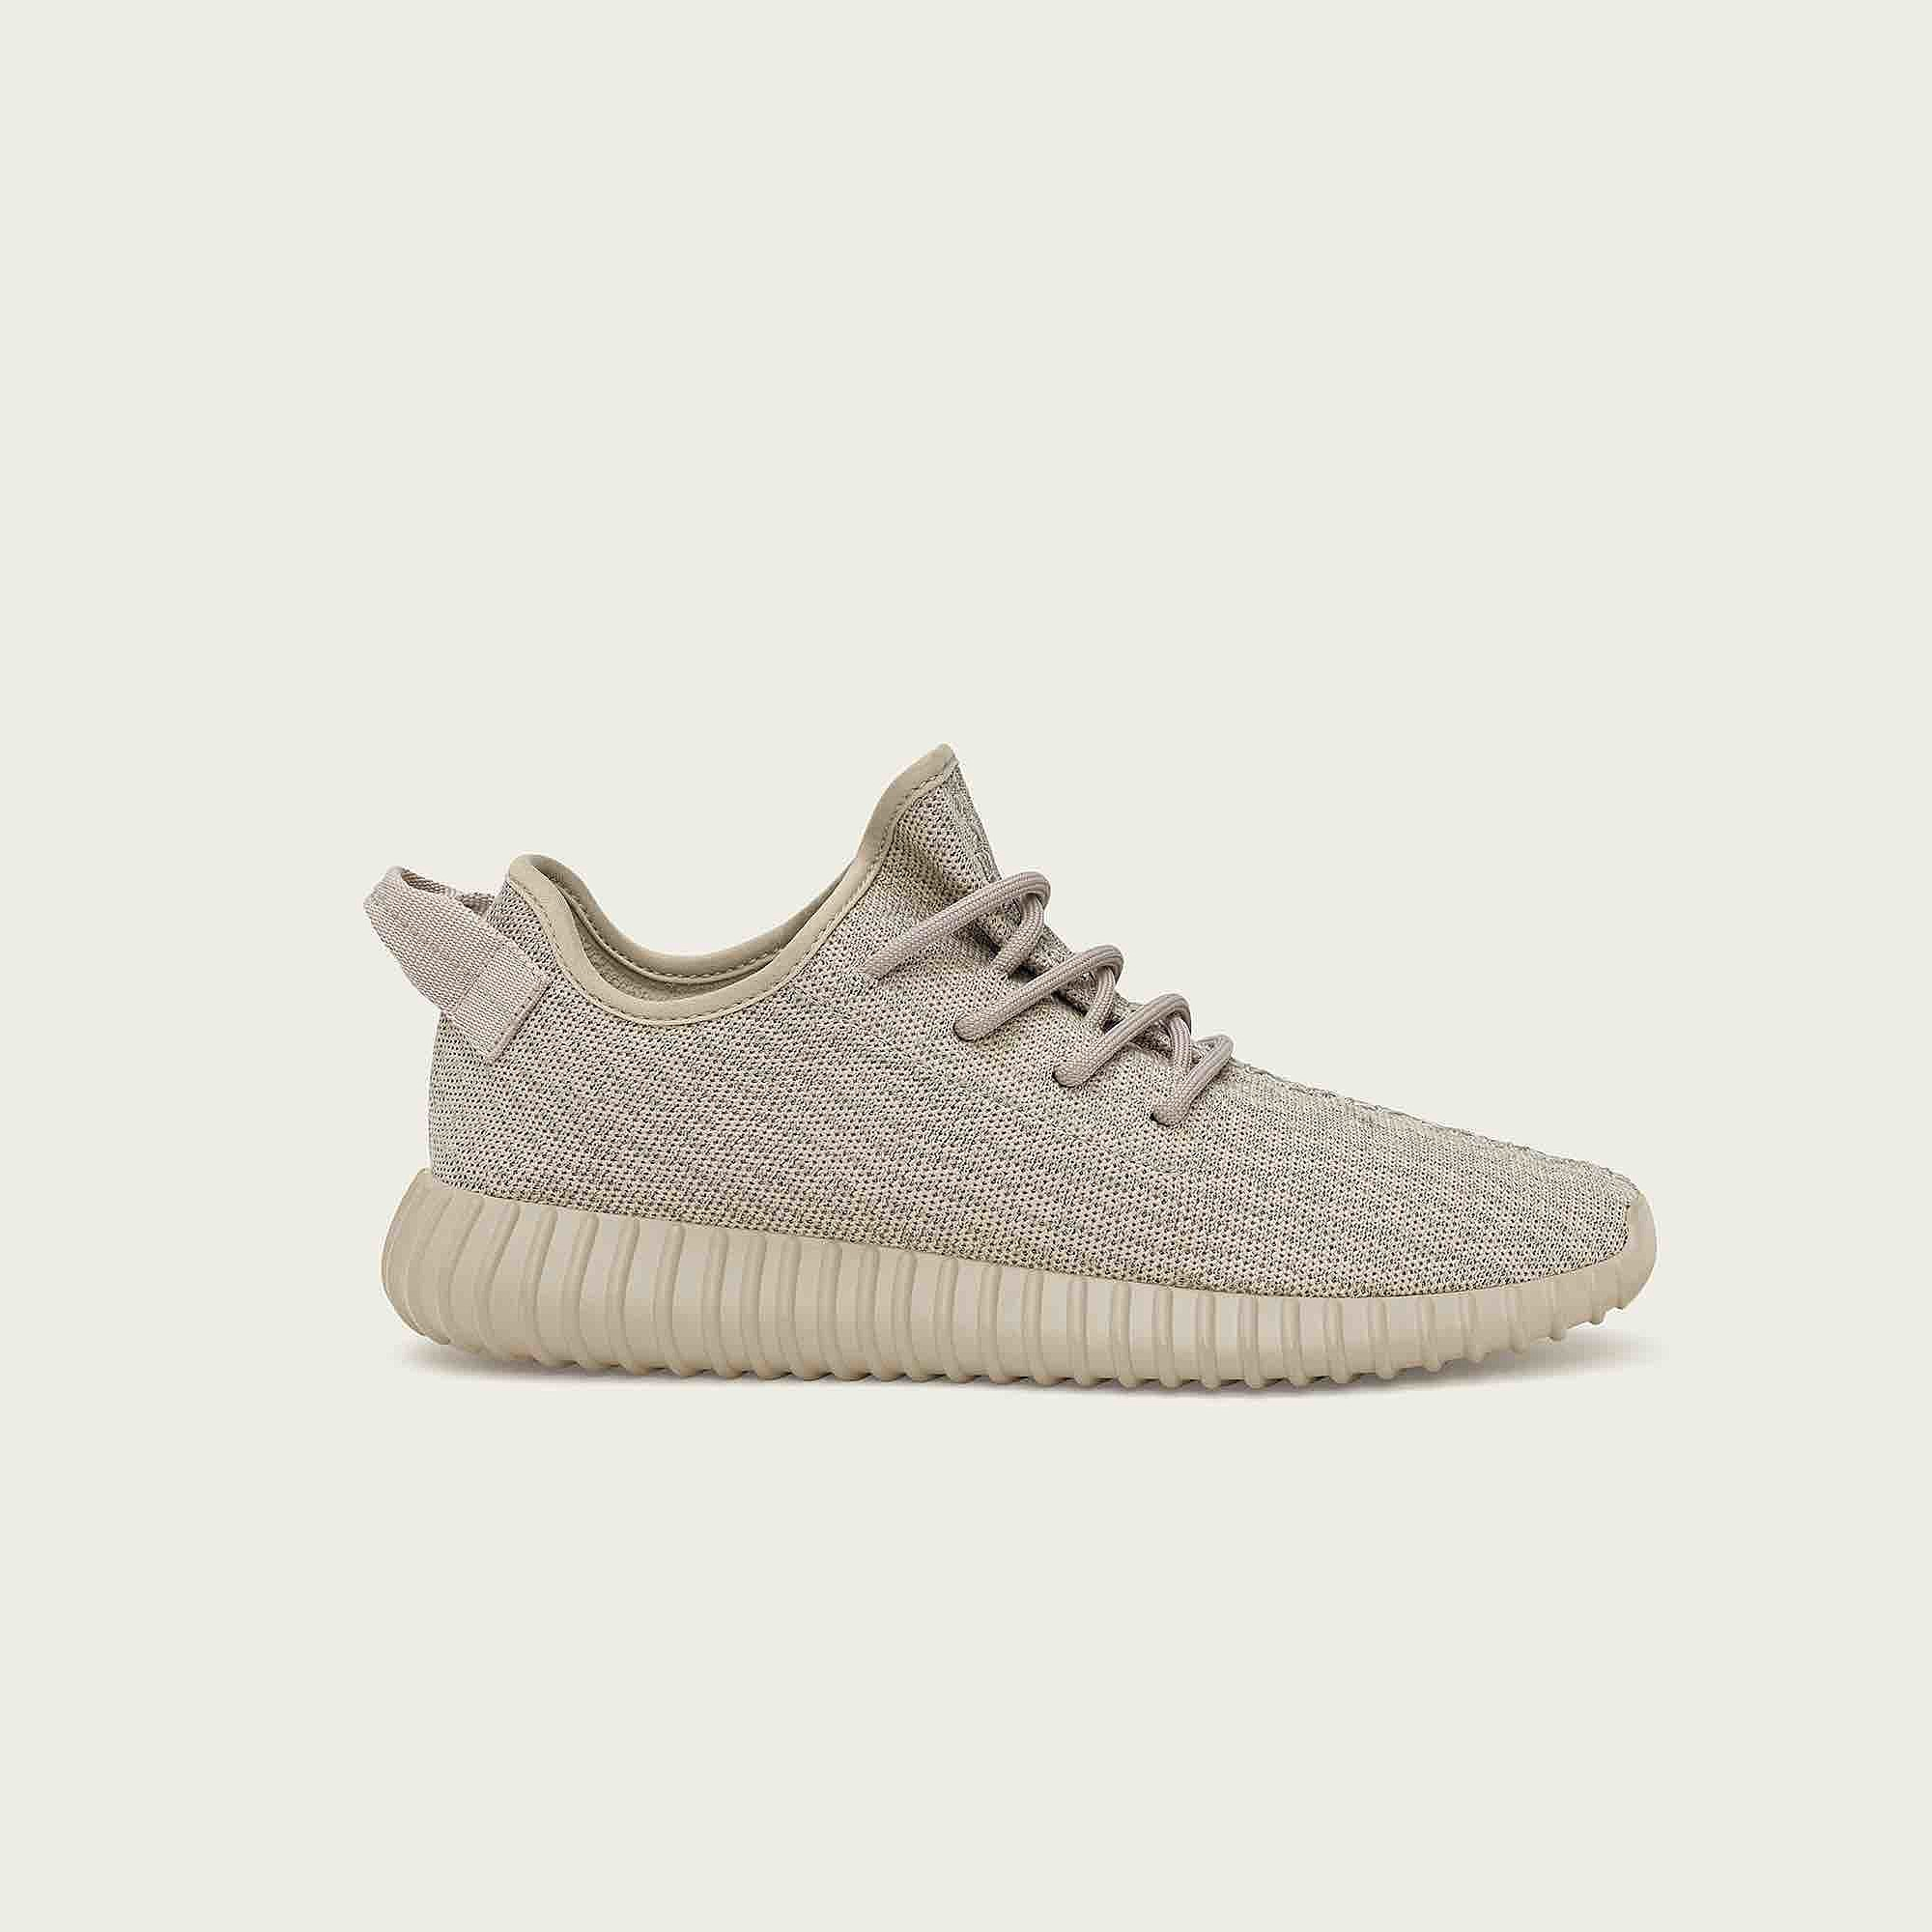 44f3257e82a0a Here s Where You Can Get the Tan Adidas Yeezy Boost 350s - XXL